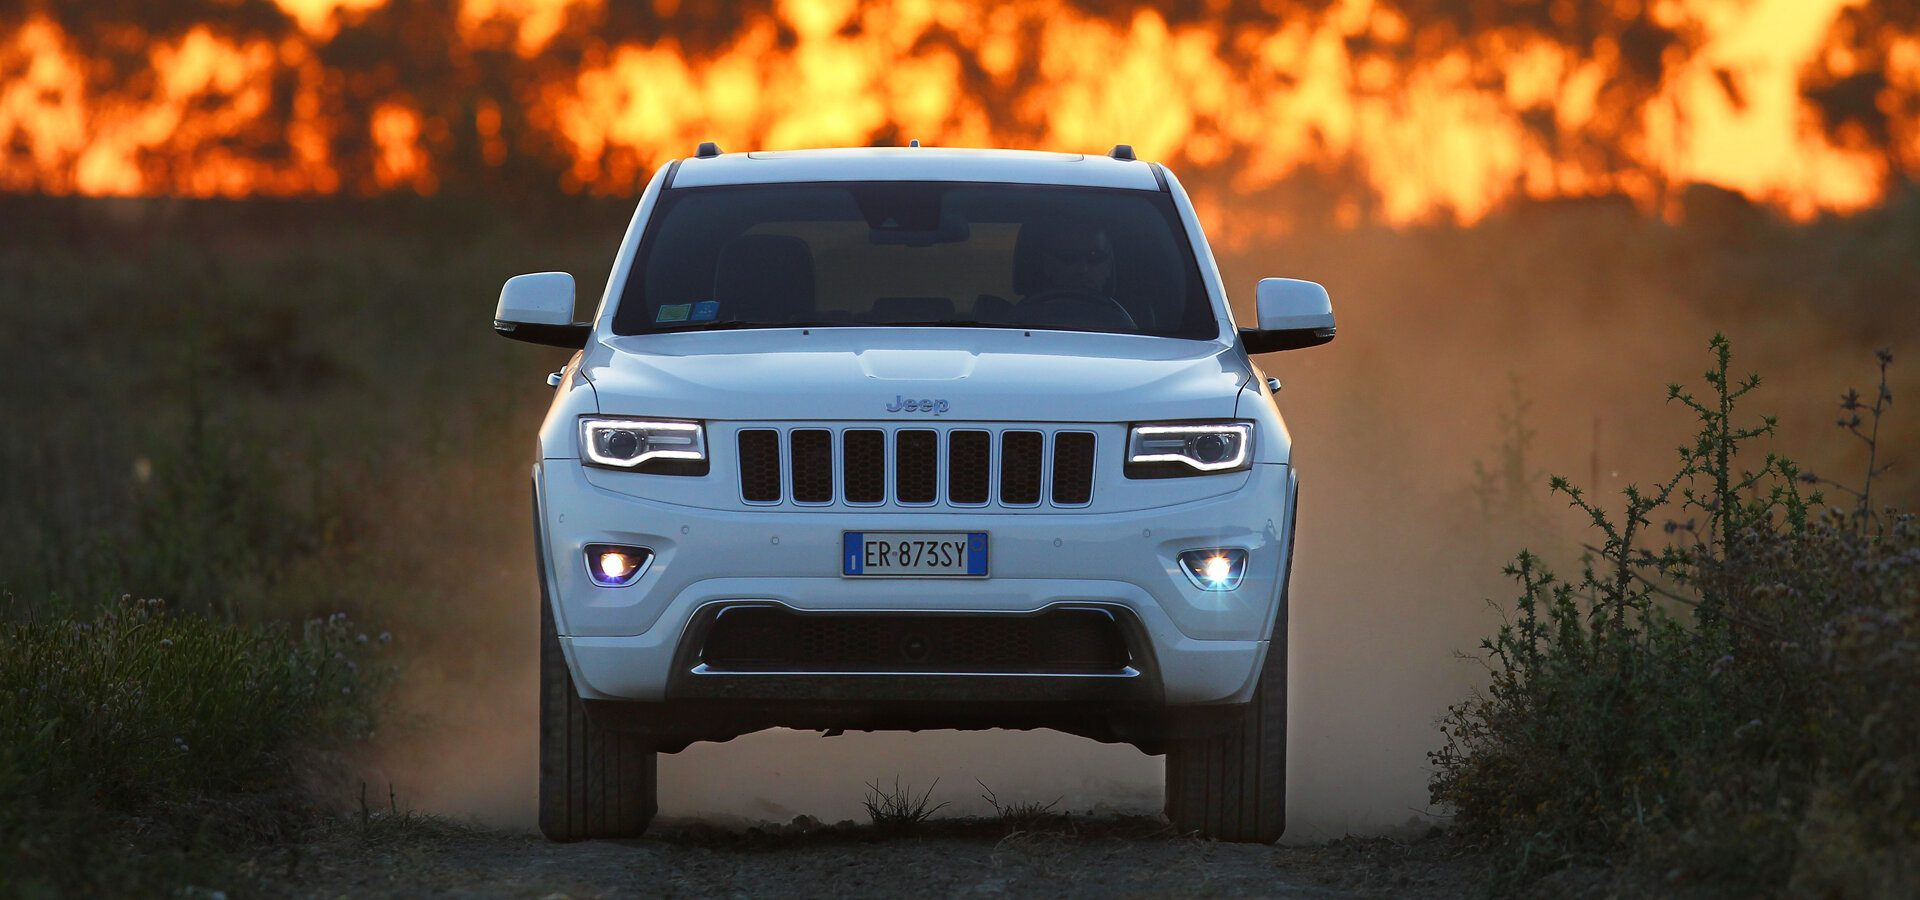 Jeep Compass - Incendio, fuego, blanco